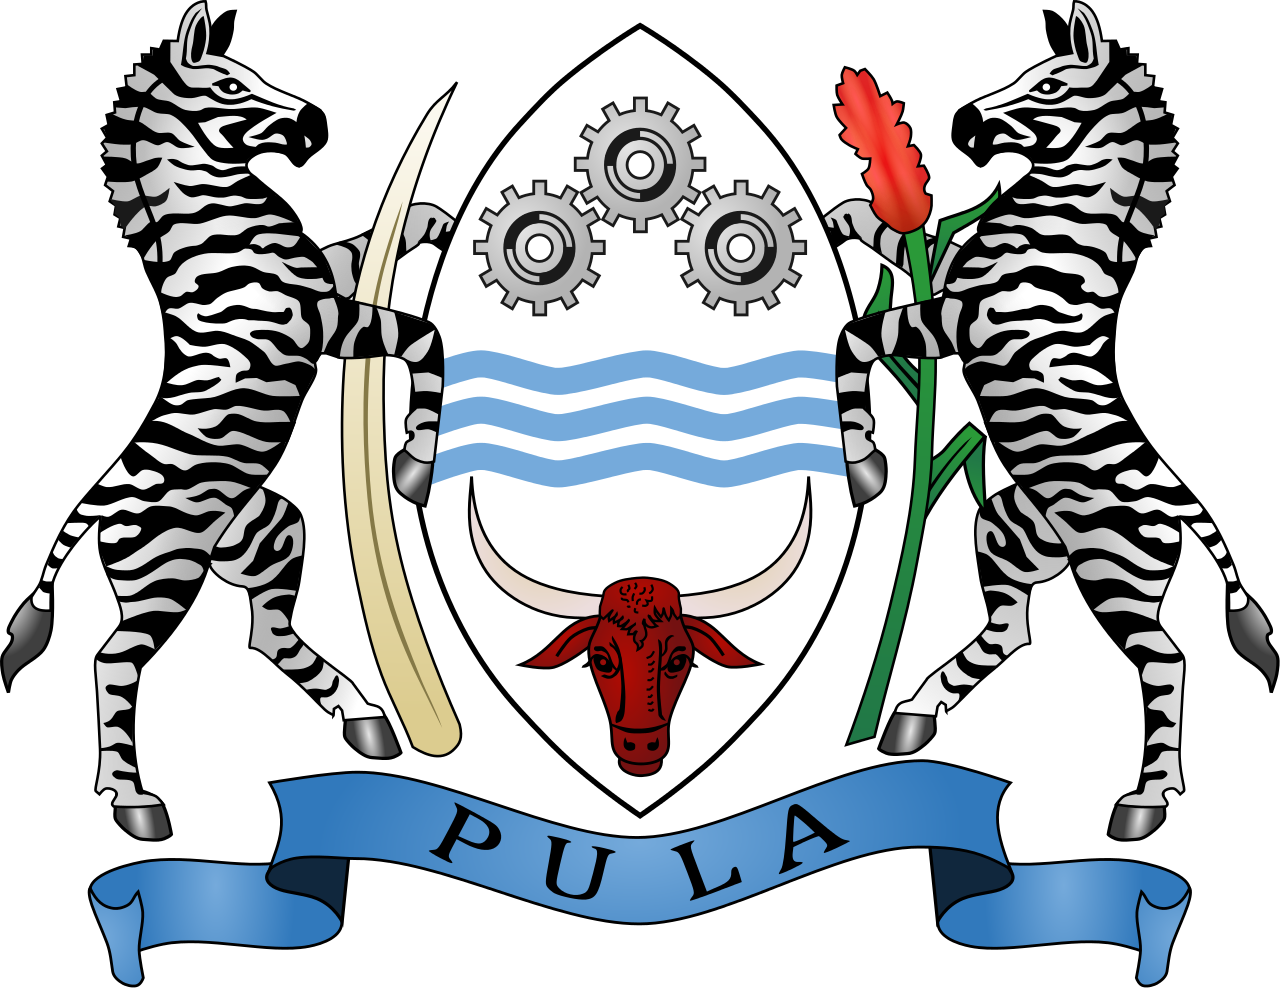 Coat of Arms of Botswana